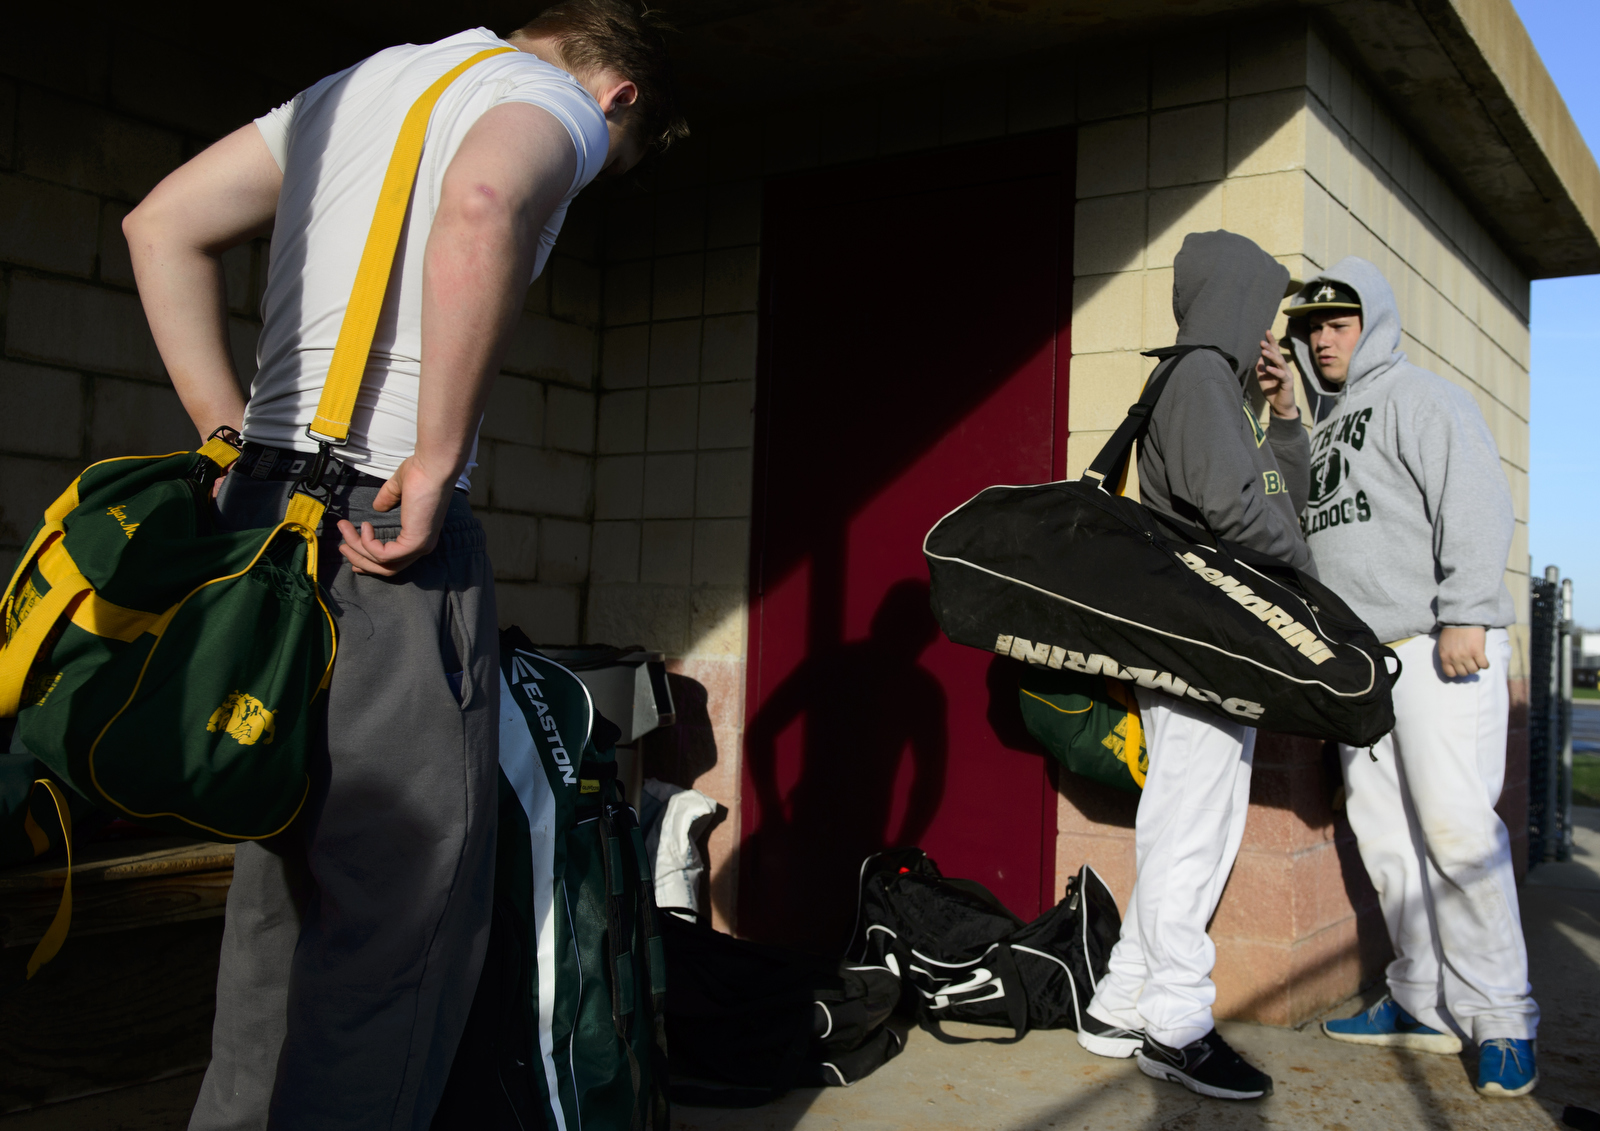 After the win against Vinton County, Ryan Mack slings his bag over his shoulder while Nathan Rickey and Kolby Rogers have a conversation before getting on the bus.